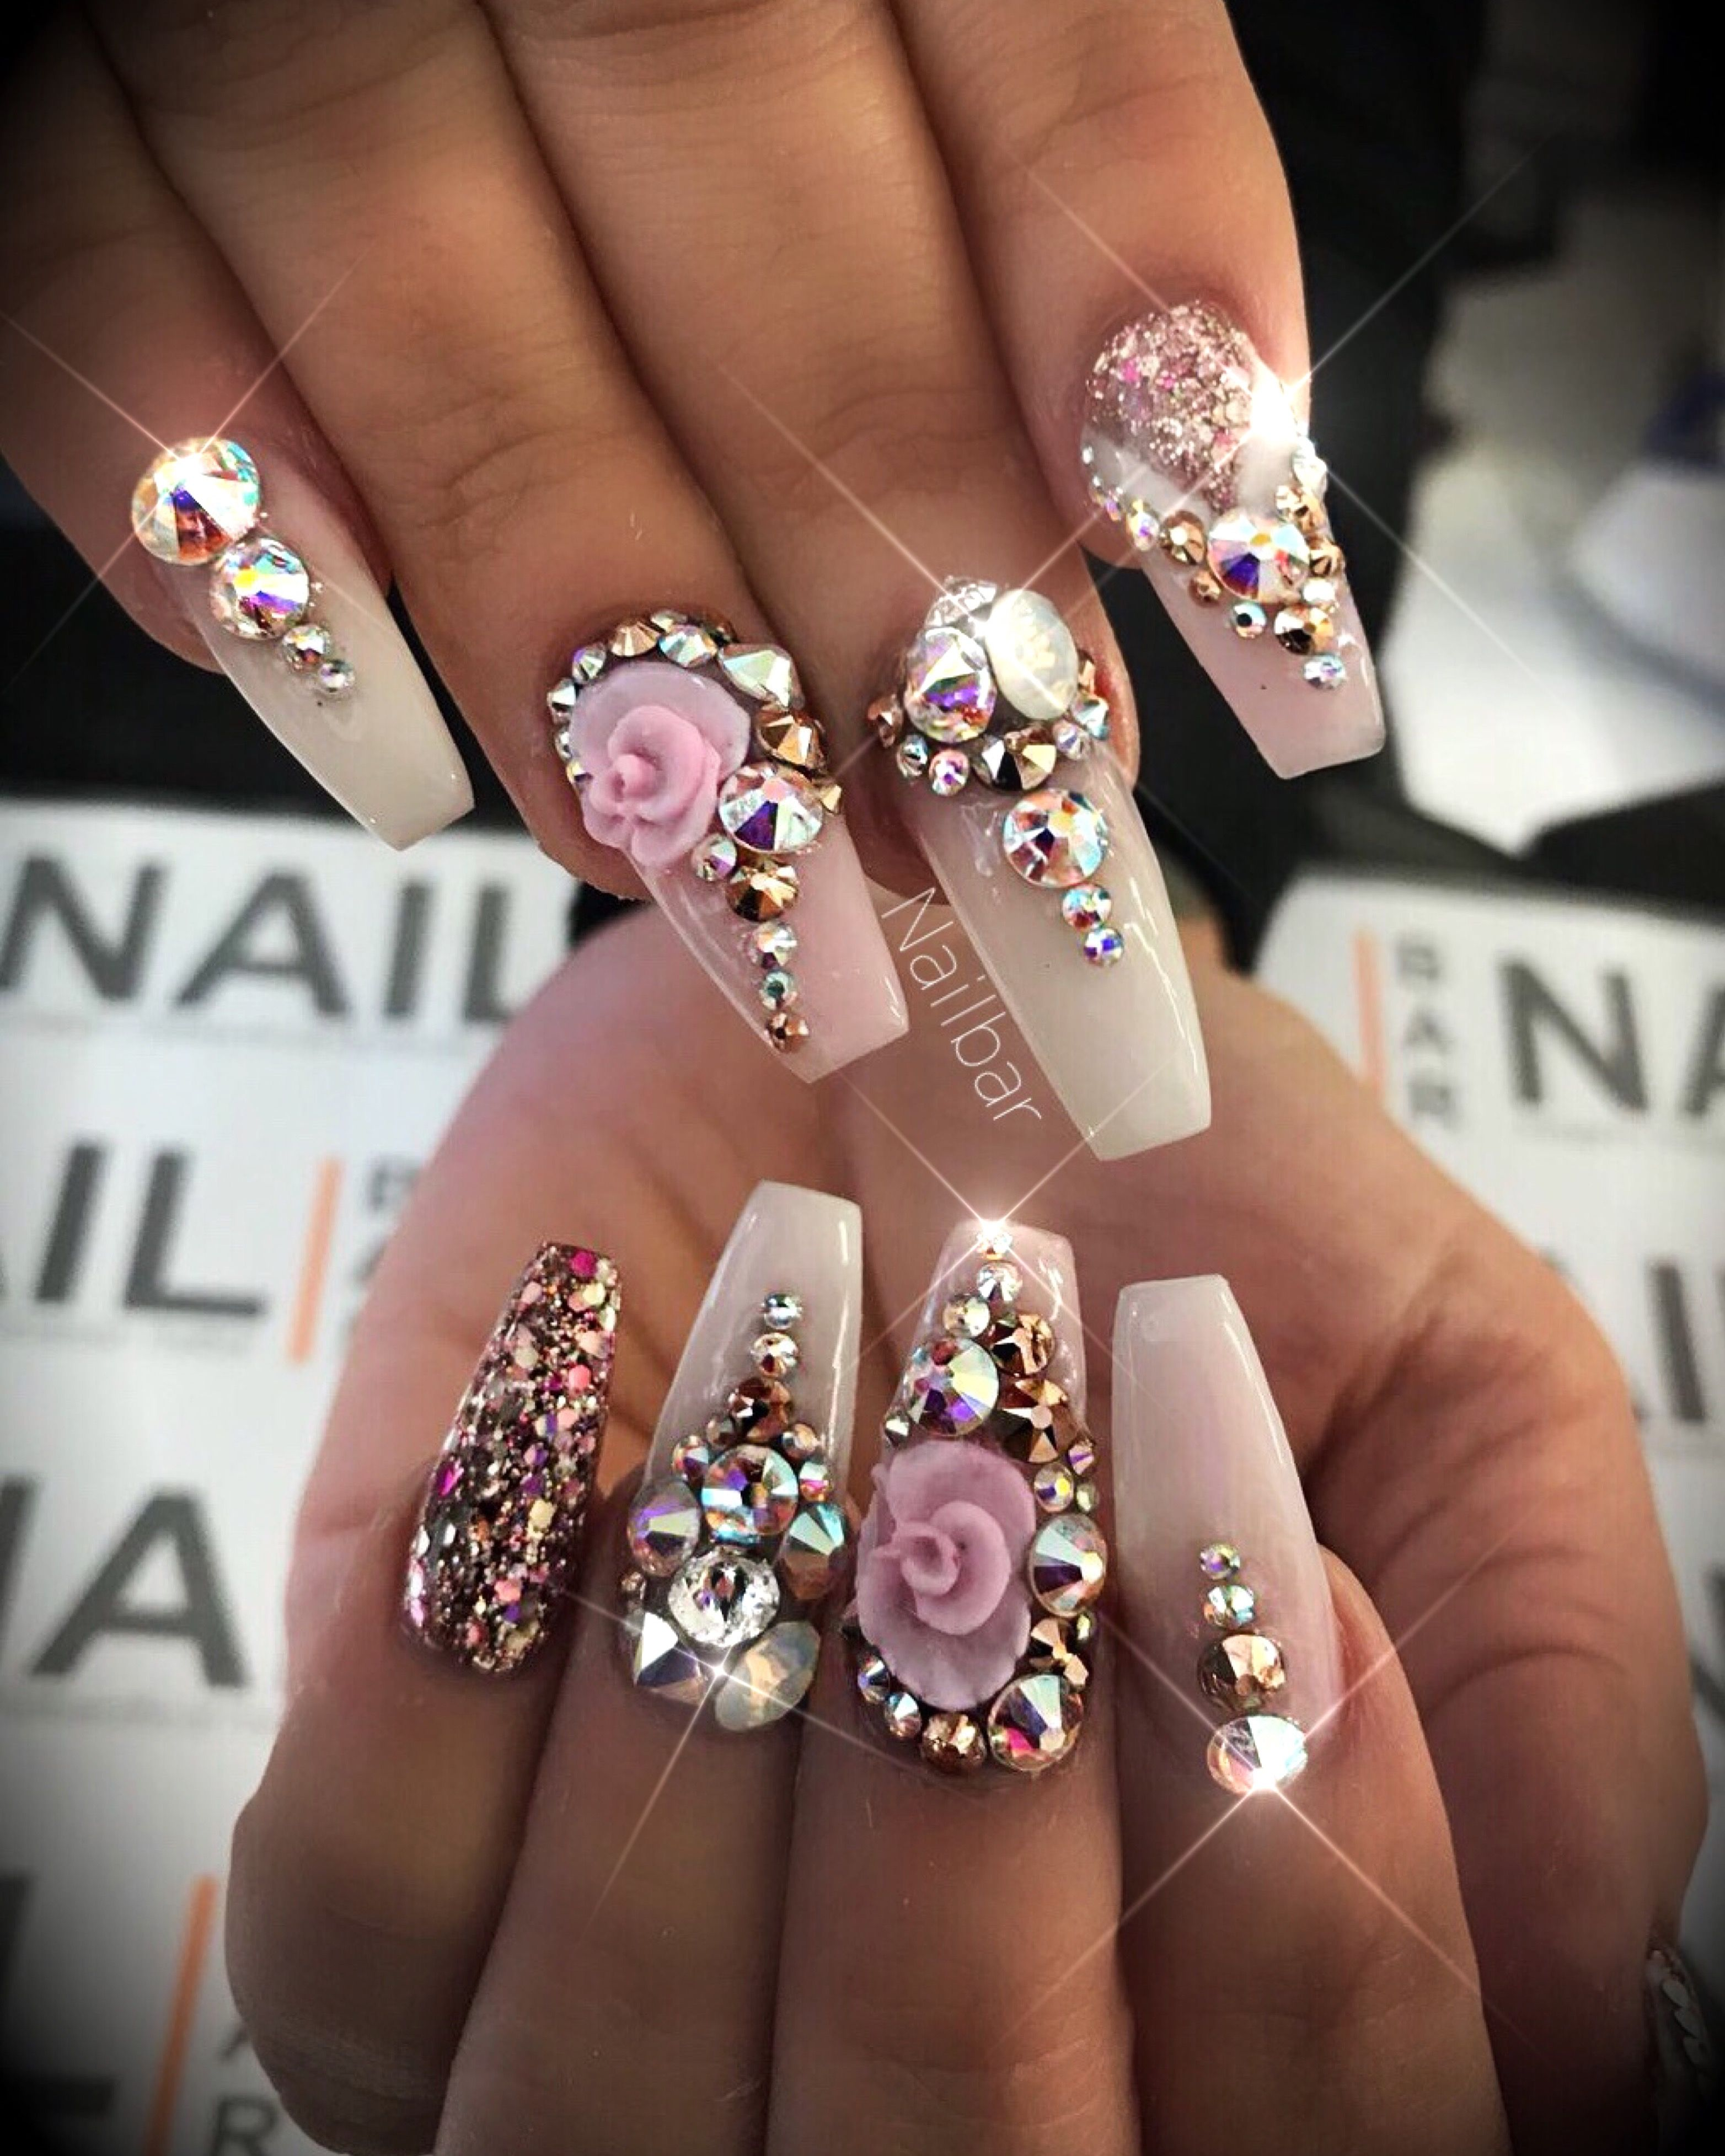 Nail art I would like these even more if they were shorter